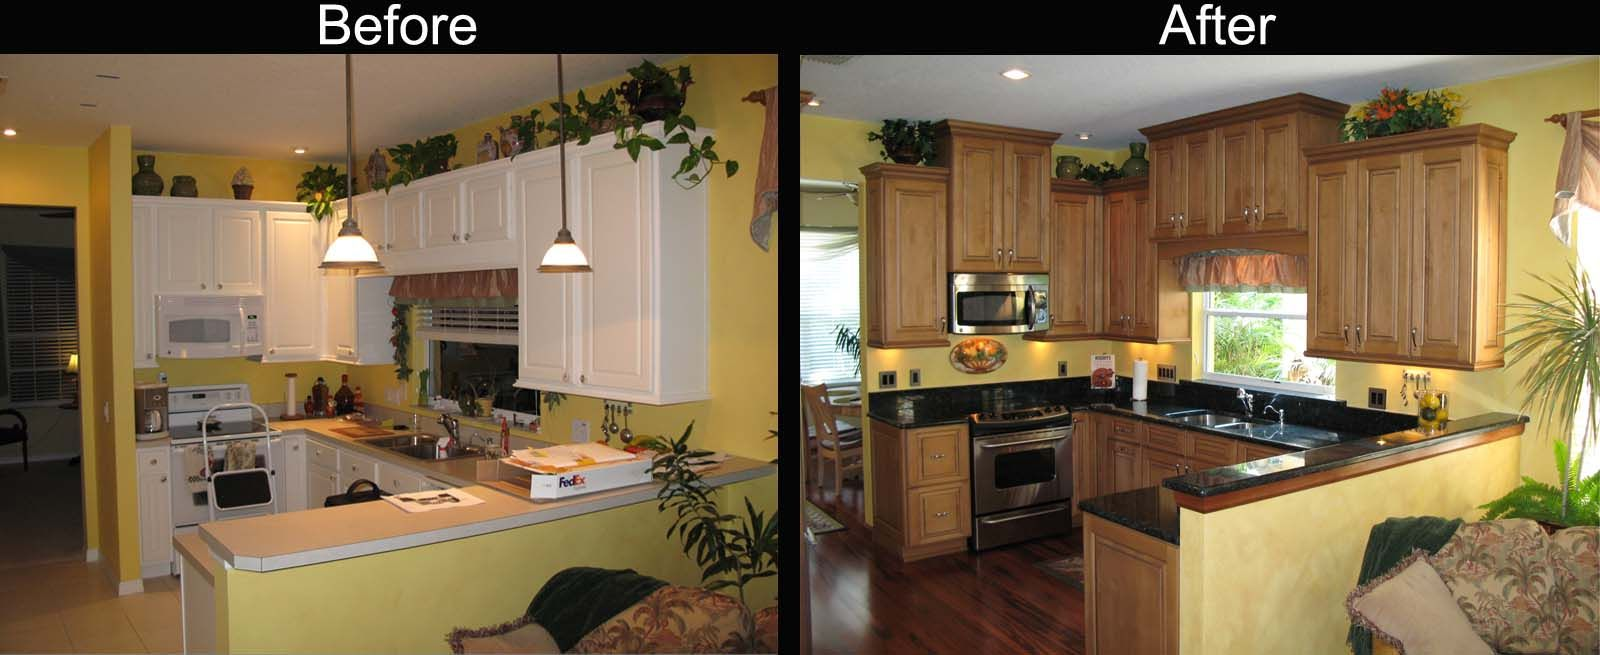 charming Kitchen Remodeling Before And After #3: Painted Cabinets Before and After: Ideas for Your Kitchen Renovation: Painted Cabinets Before And After View 11 | architecture | Pinterest | Cabinets, ...